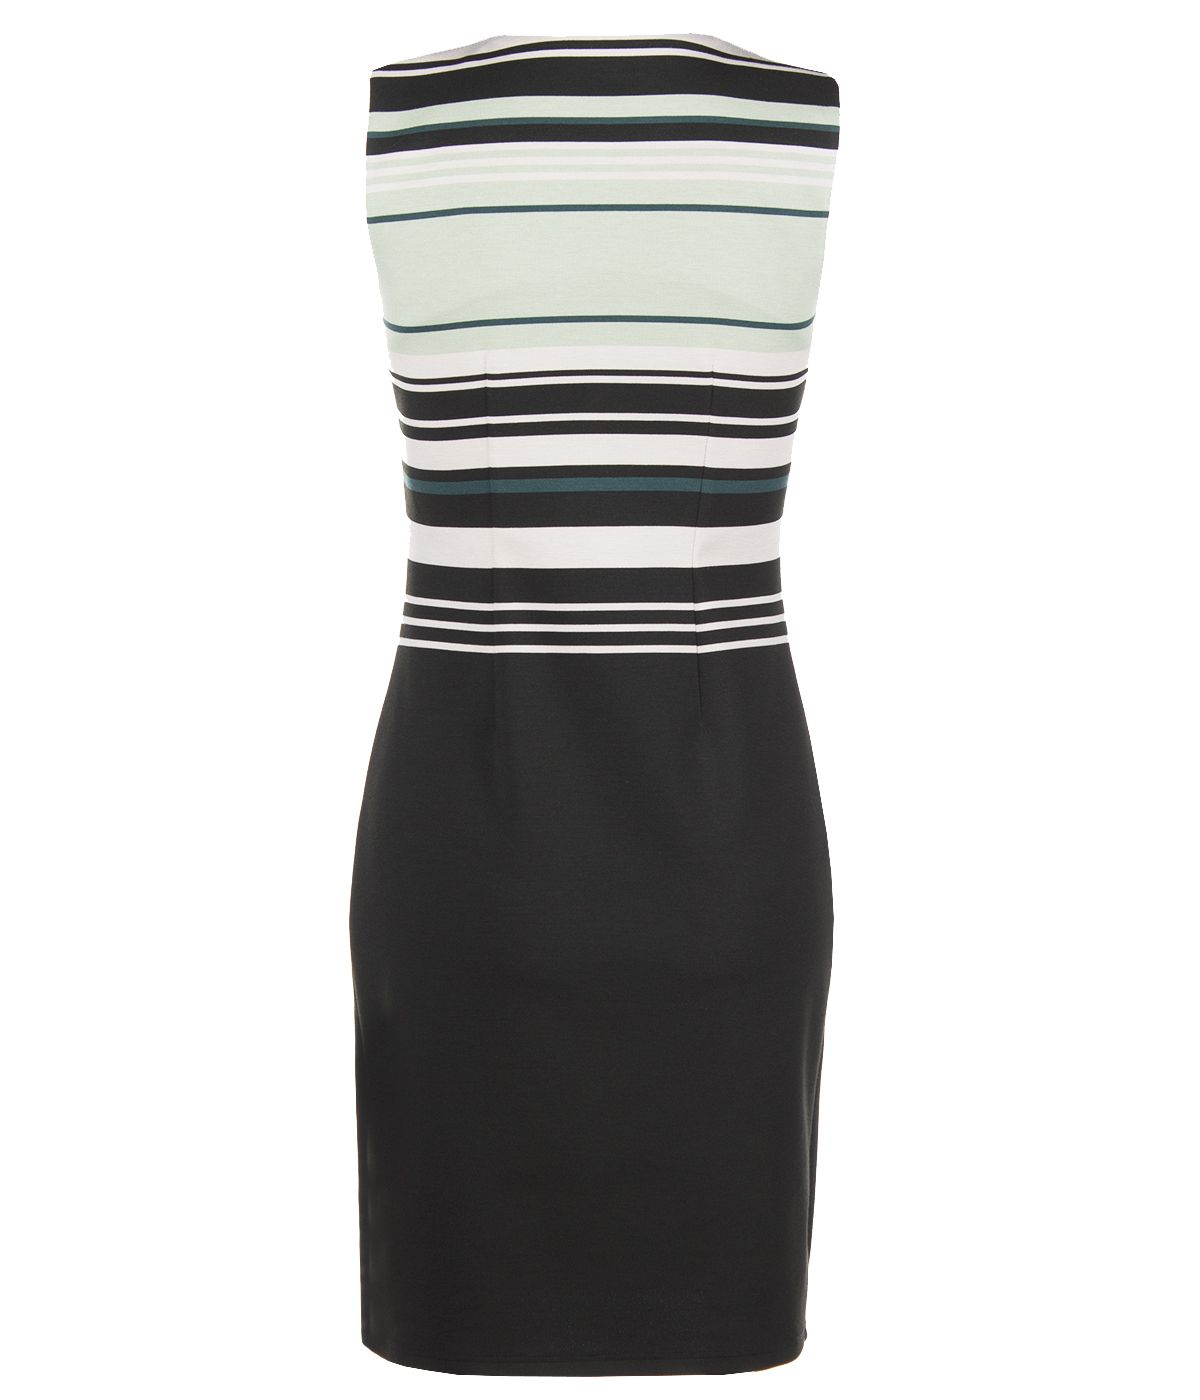 PENCIL SLEEVELESS DRESS WITH STRIPES AND ROUND NECKLINE 1